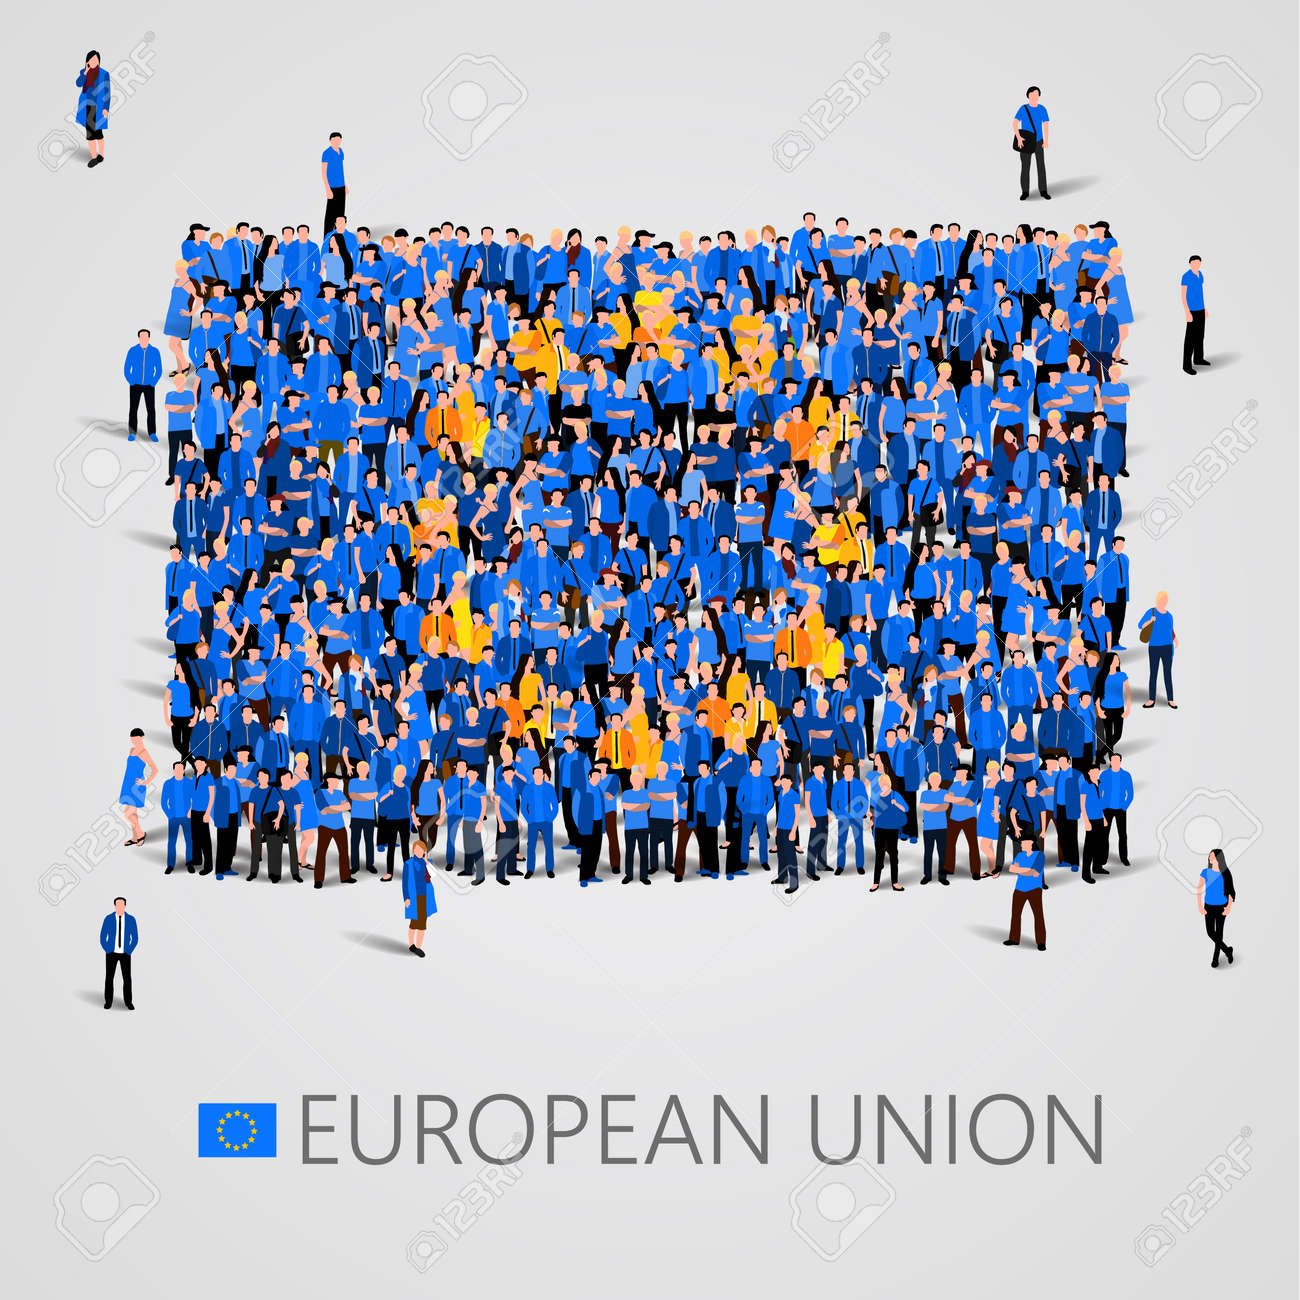 Large group of people in the shape of European union flag. Europe. - 74619303